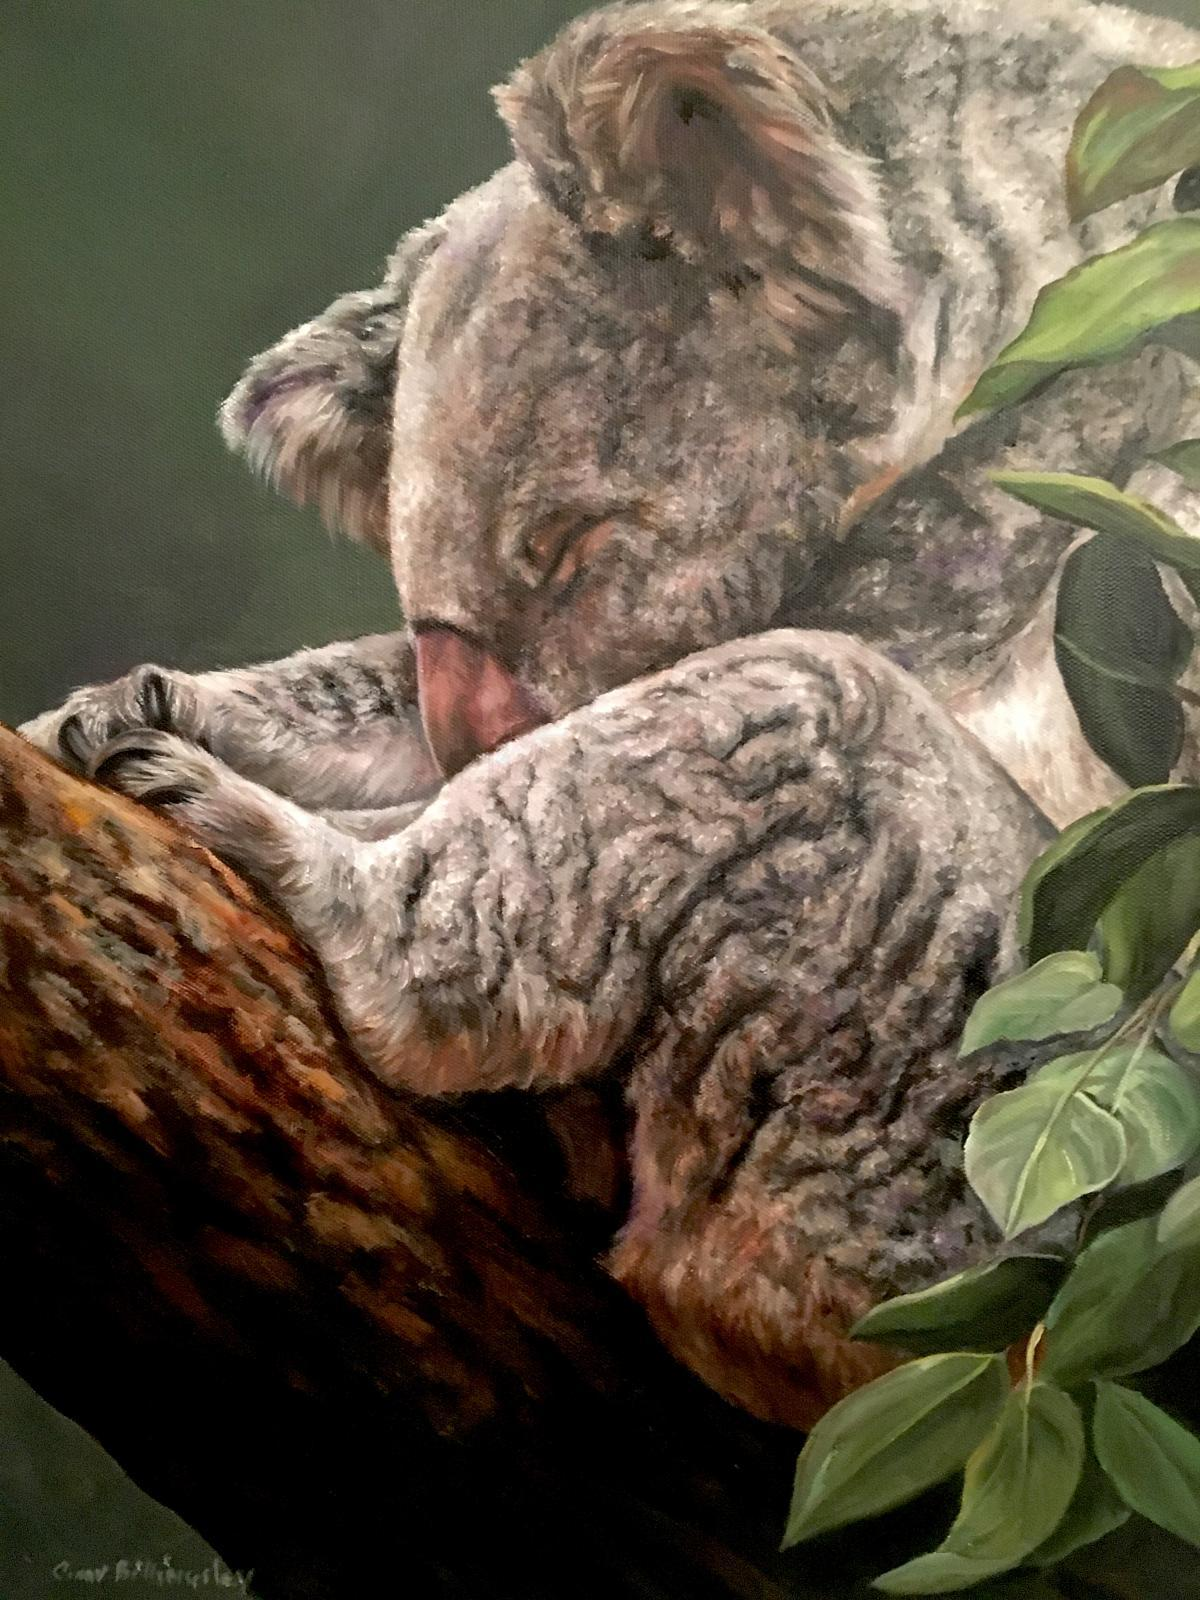   Wallhanging by Cindy Billingsley   Artists for Conservation